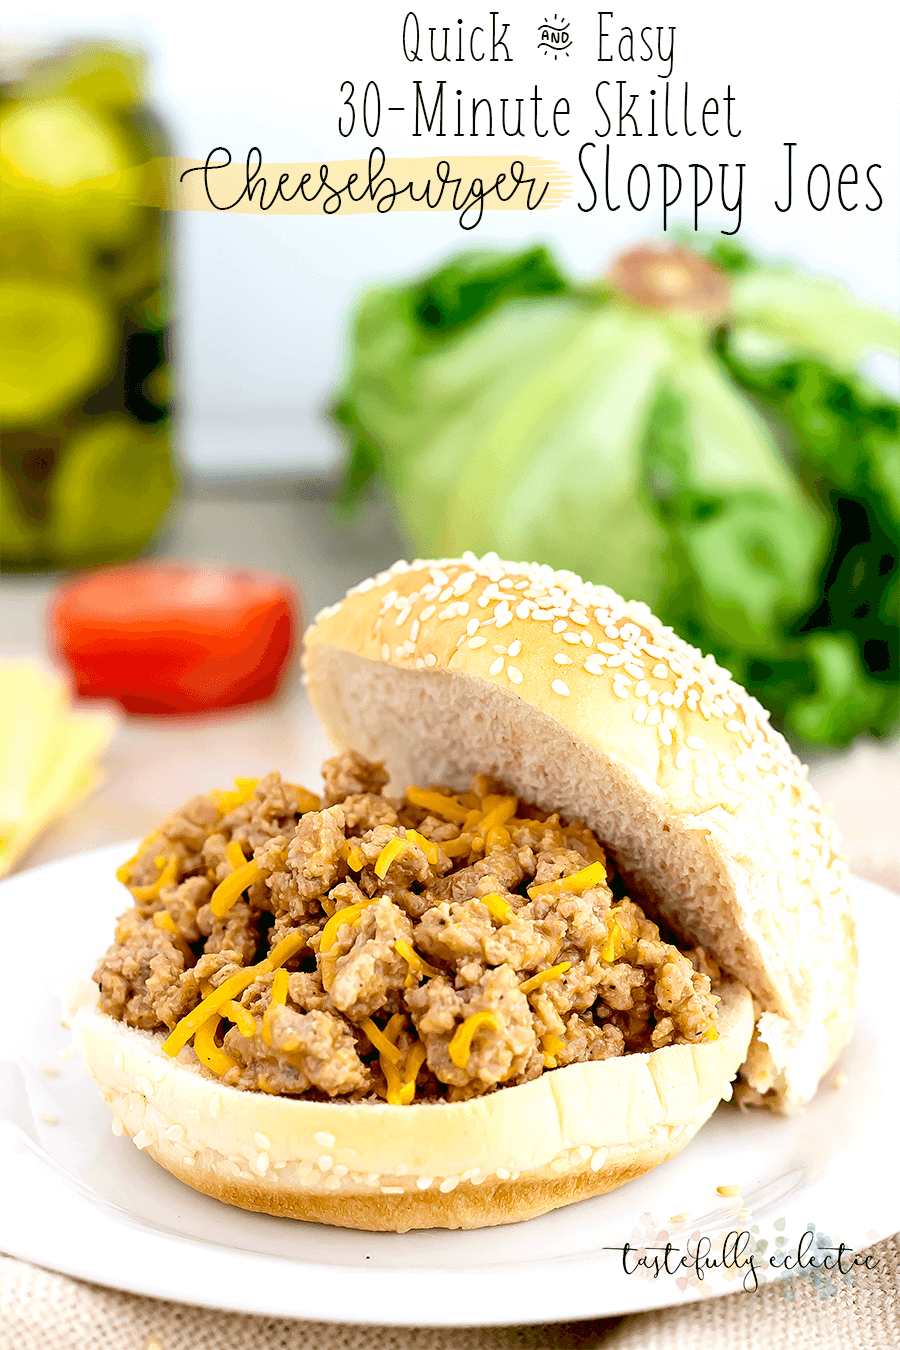 30-Minute Skillet Cheeseburger Sloppy Joes